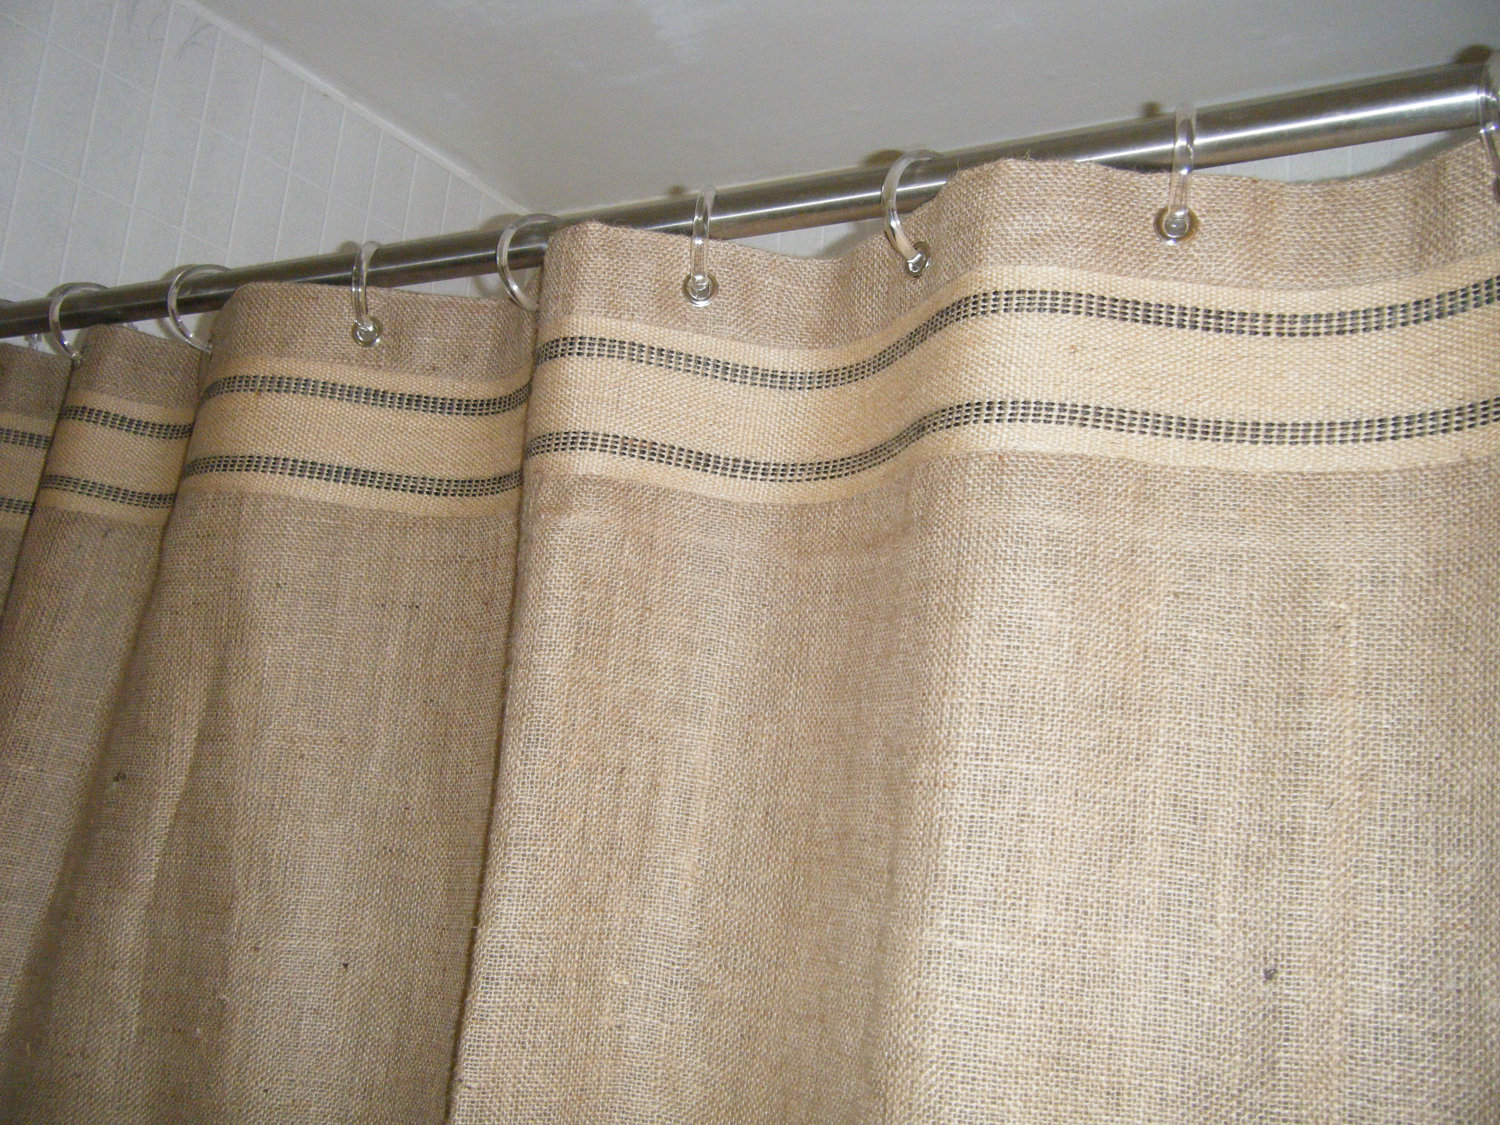 Cool Design Color Bathroom with burlap shower curtain for make your Bathroom Interior more Awesome